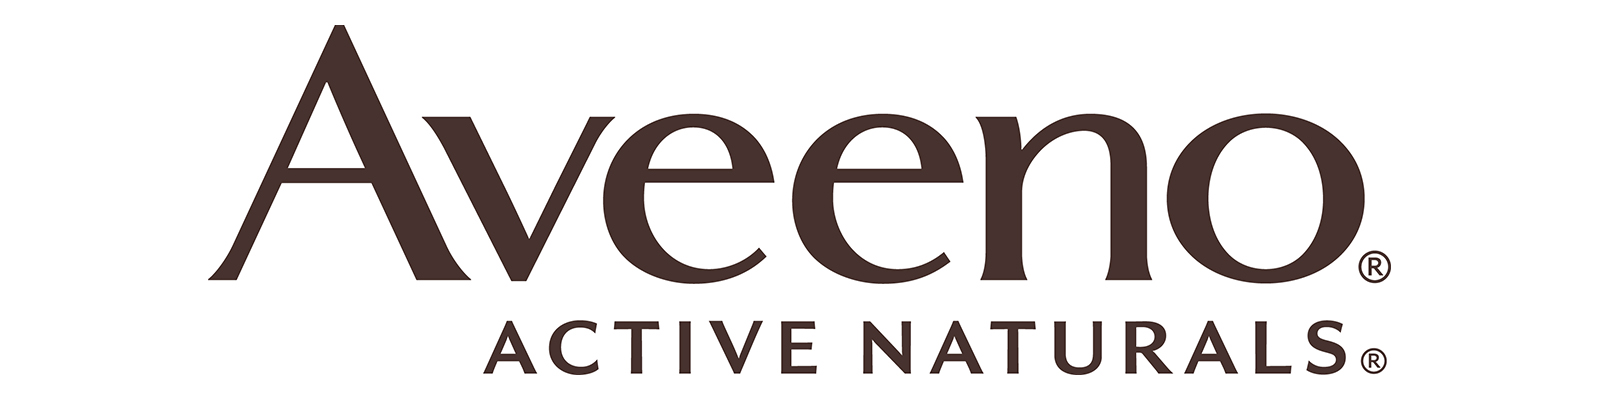 Aveeno-wordmark+newLeaf_082411